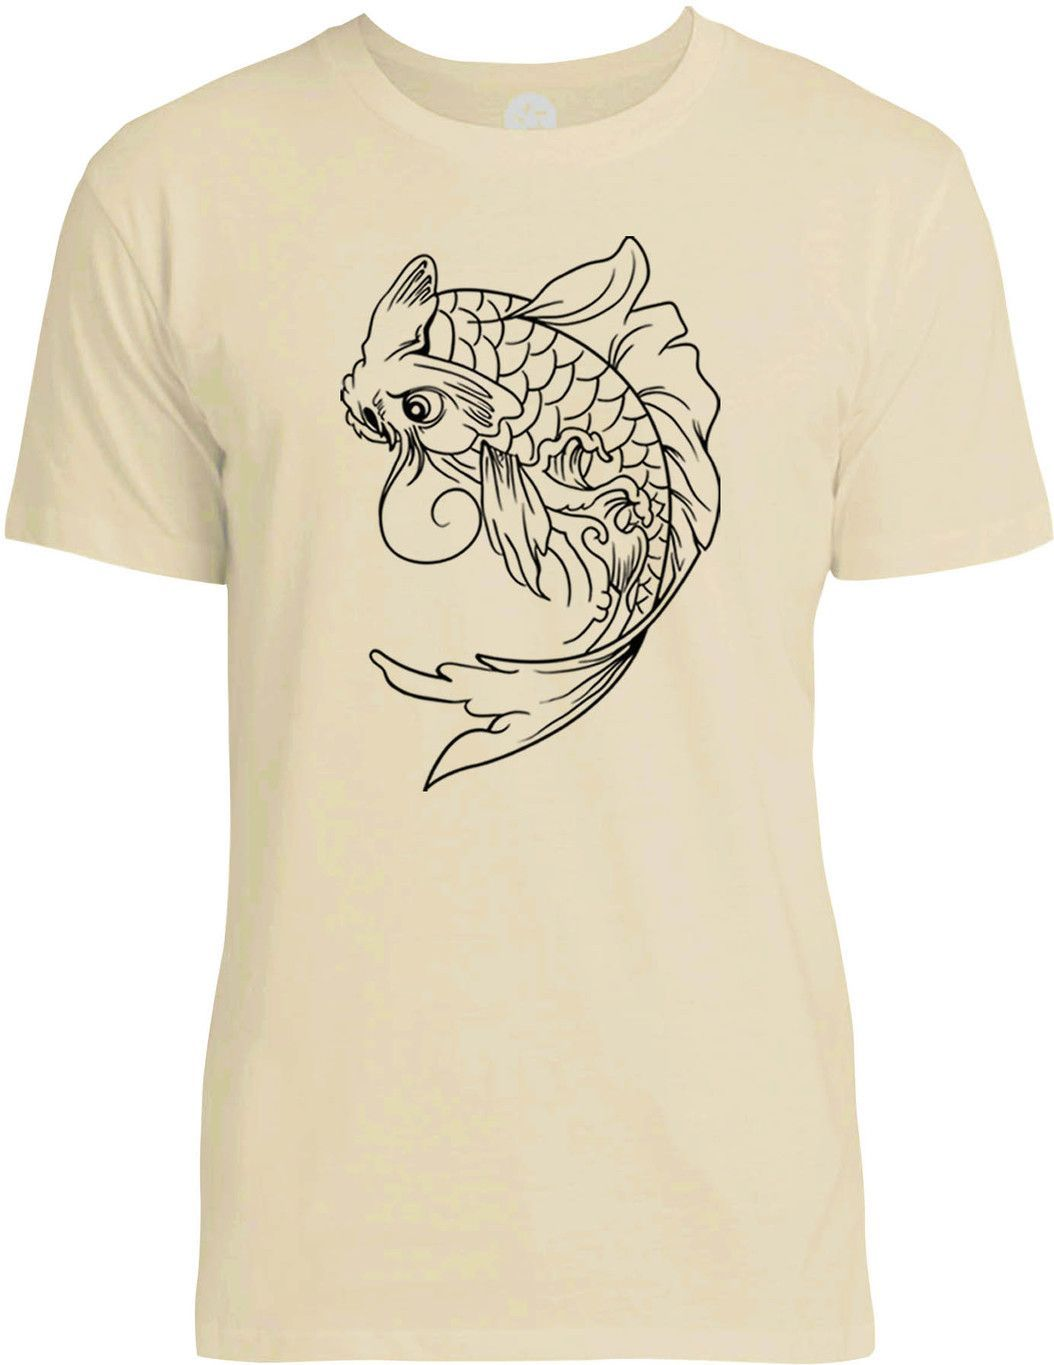 112bfd3c62a38 Koi Fish Tattoo T Shirts - BCD Tofu House